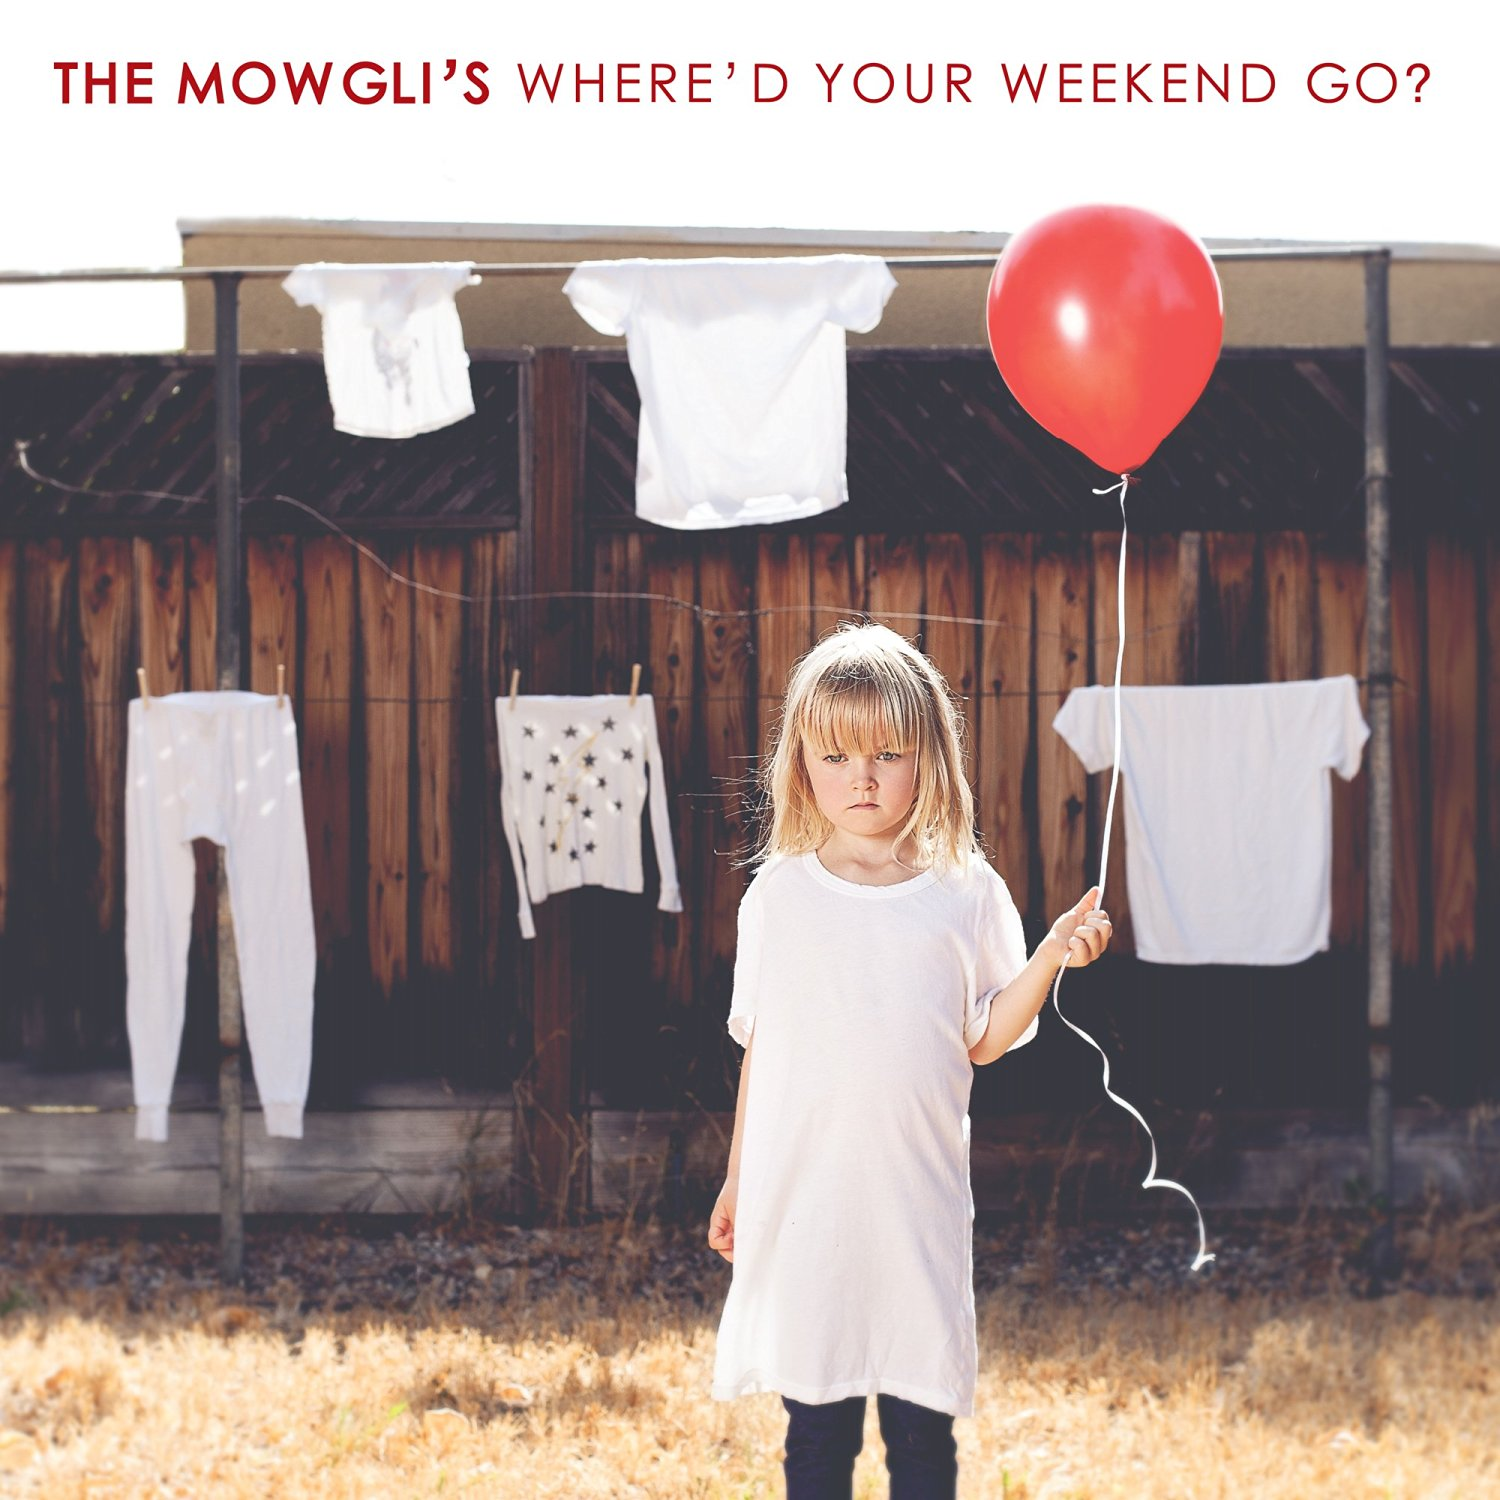 The Mowgli's - Where'd Your Weekend Go?